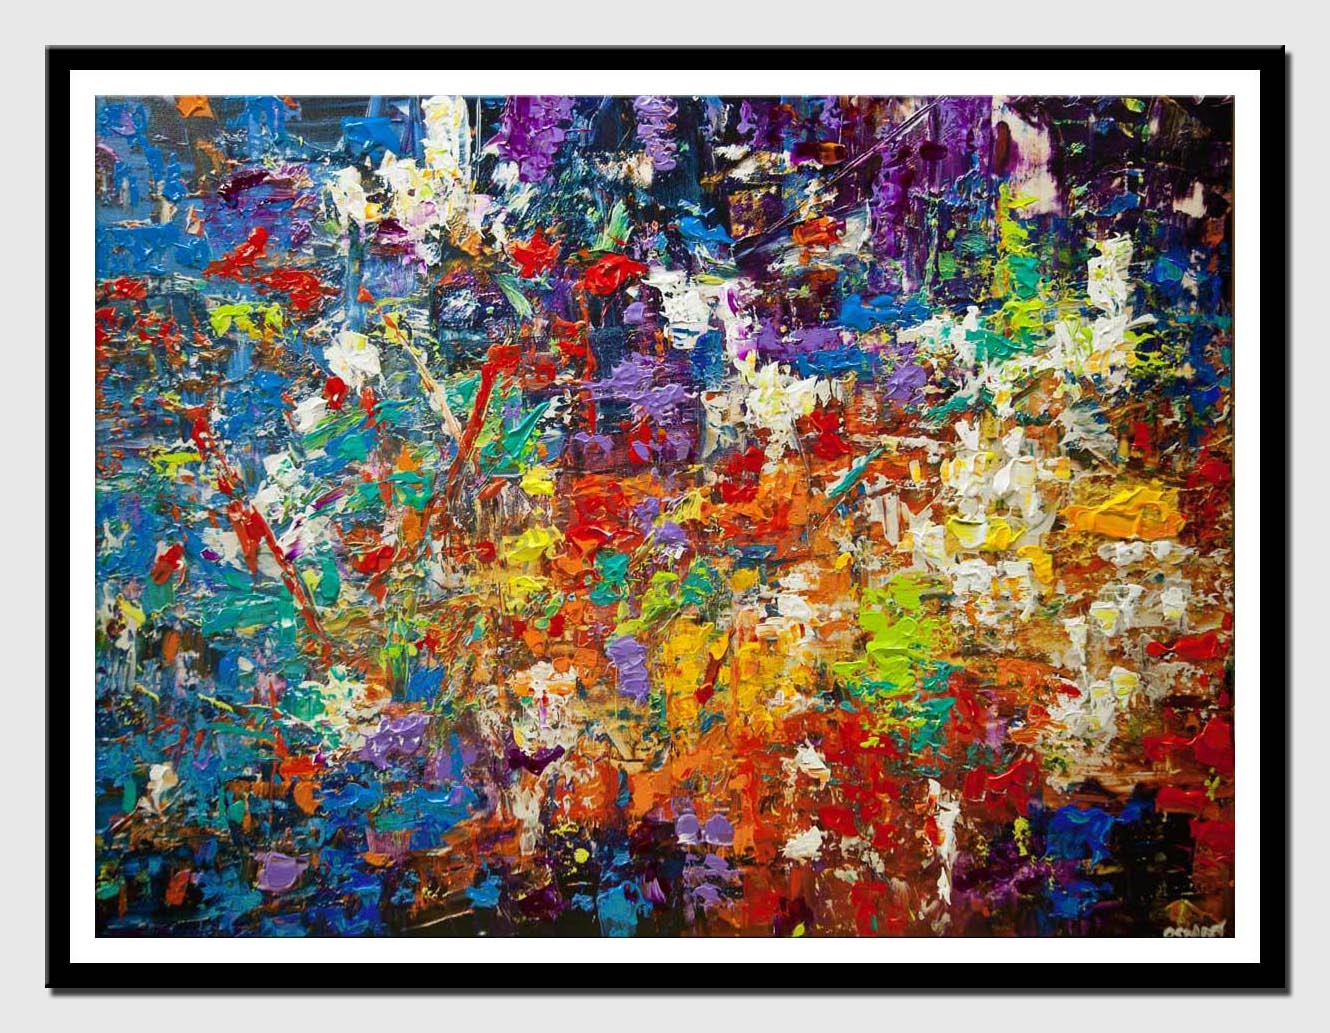 canvas print of colorful textured abstract art